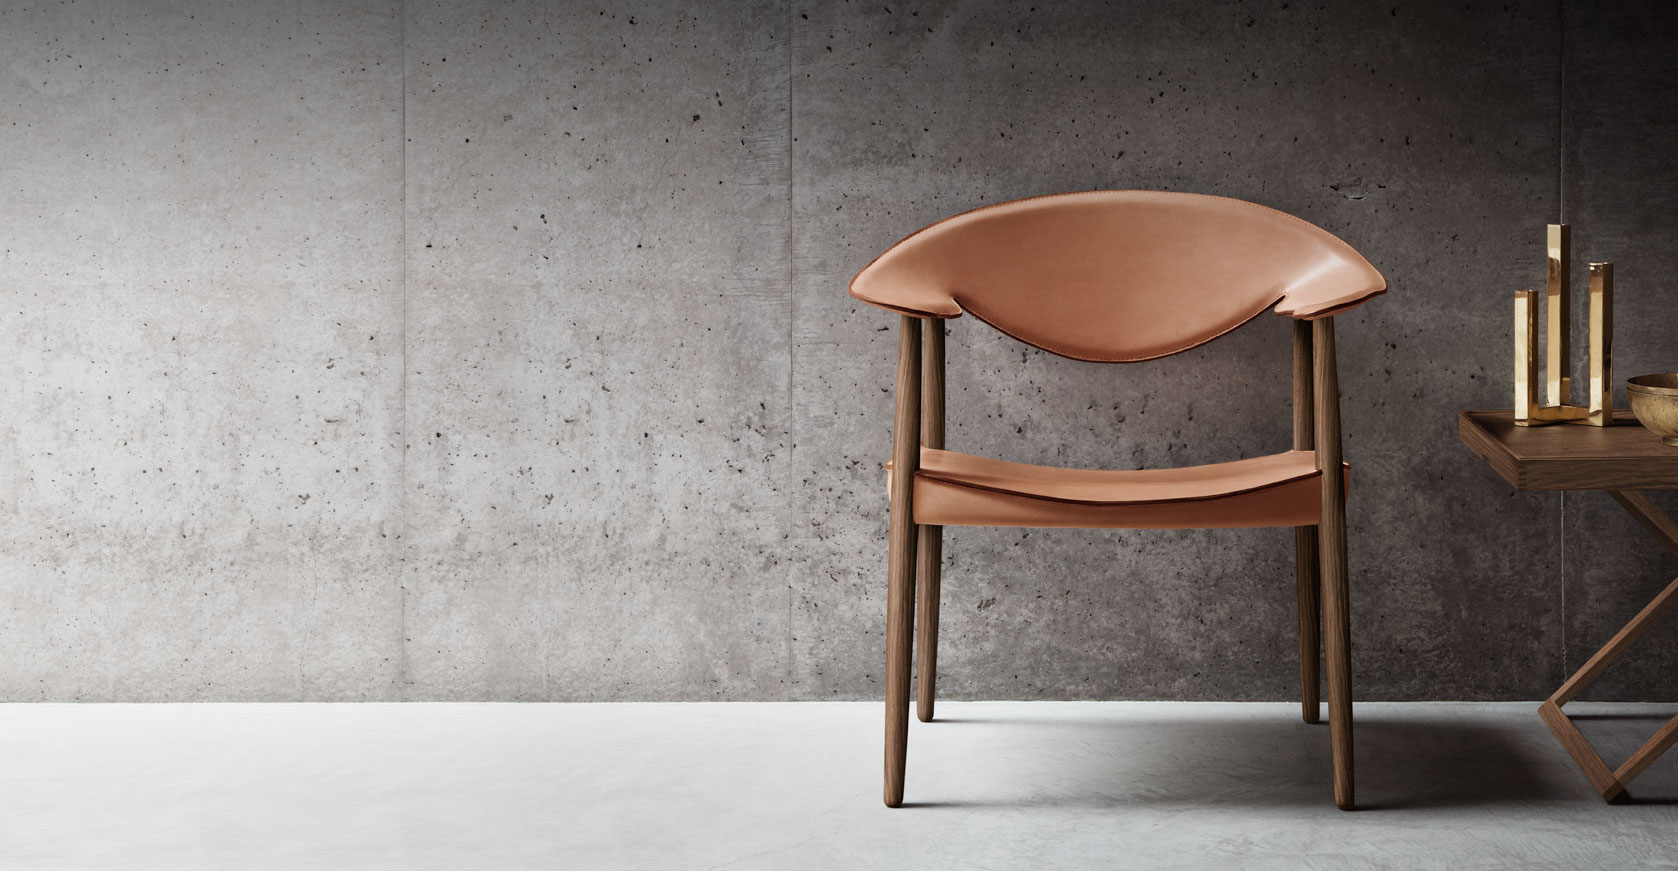 A folding table and walnut chair from Carl Hansen.